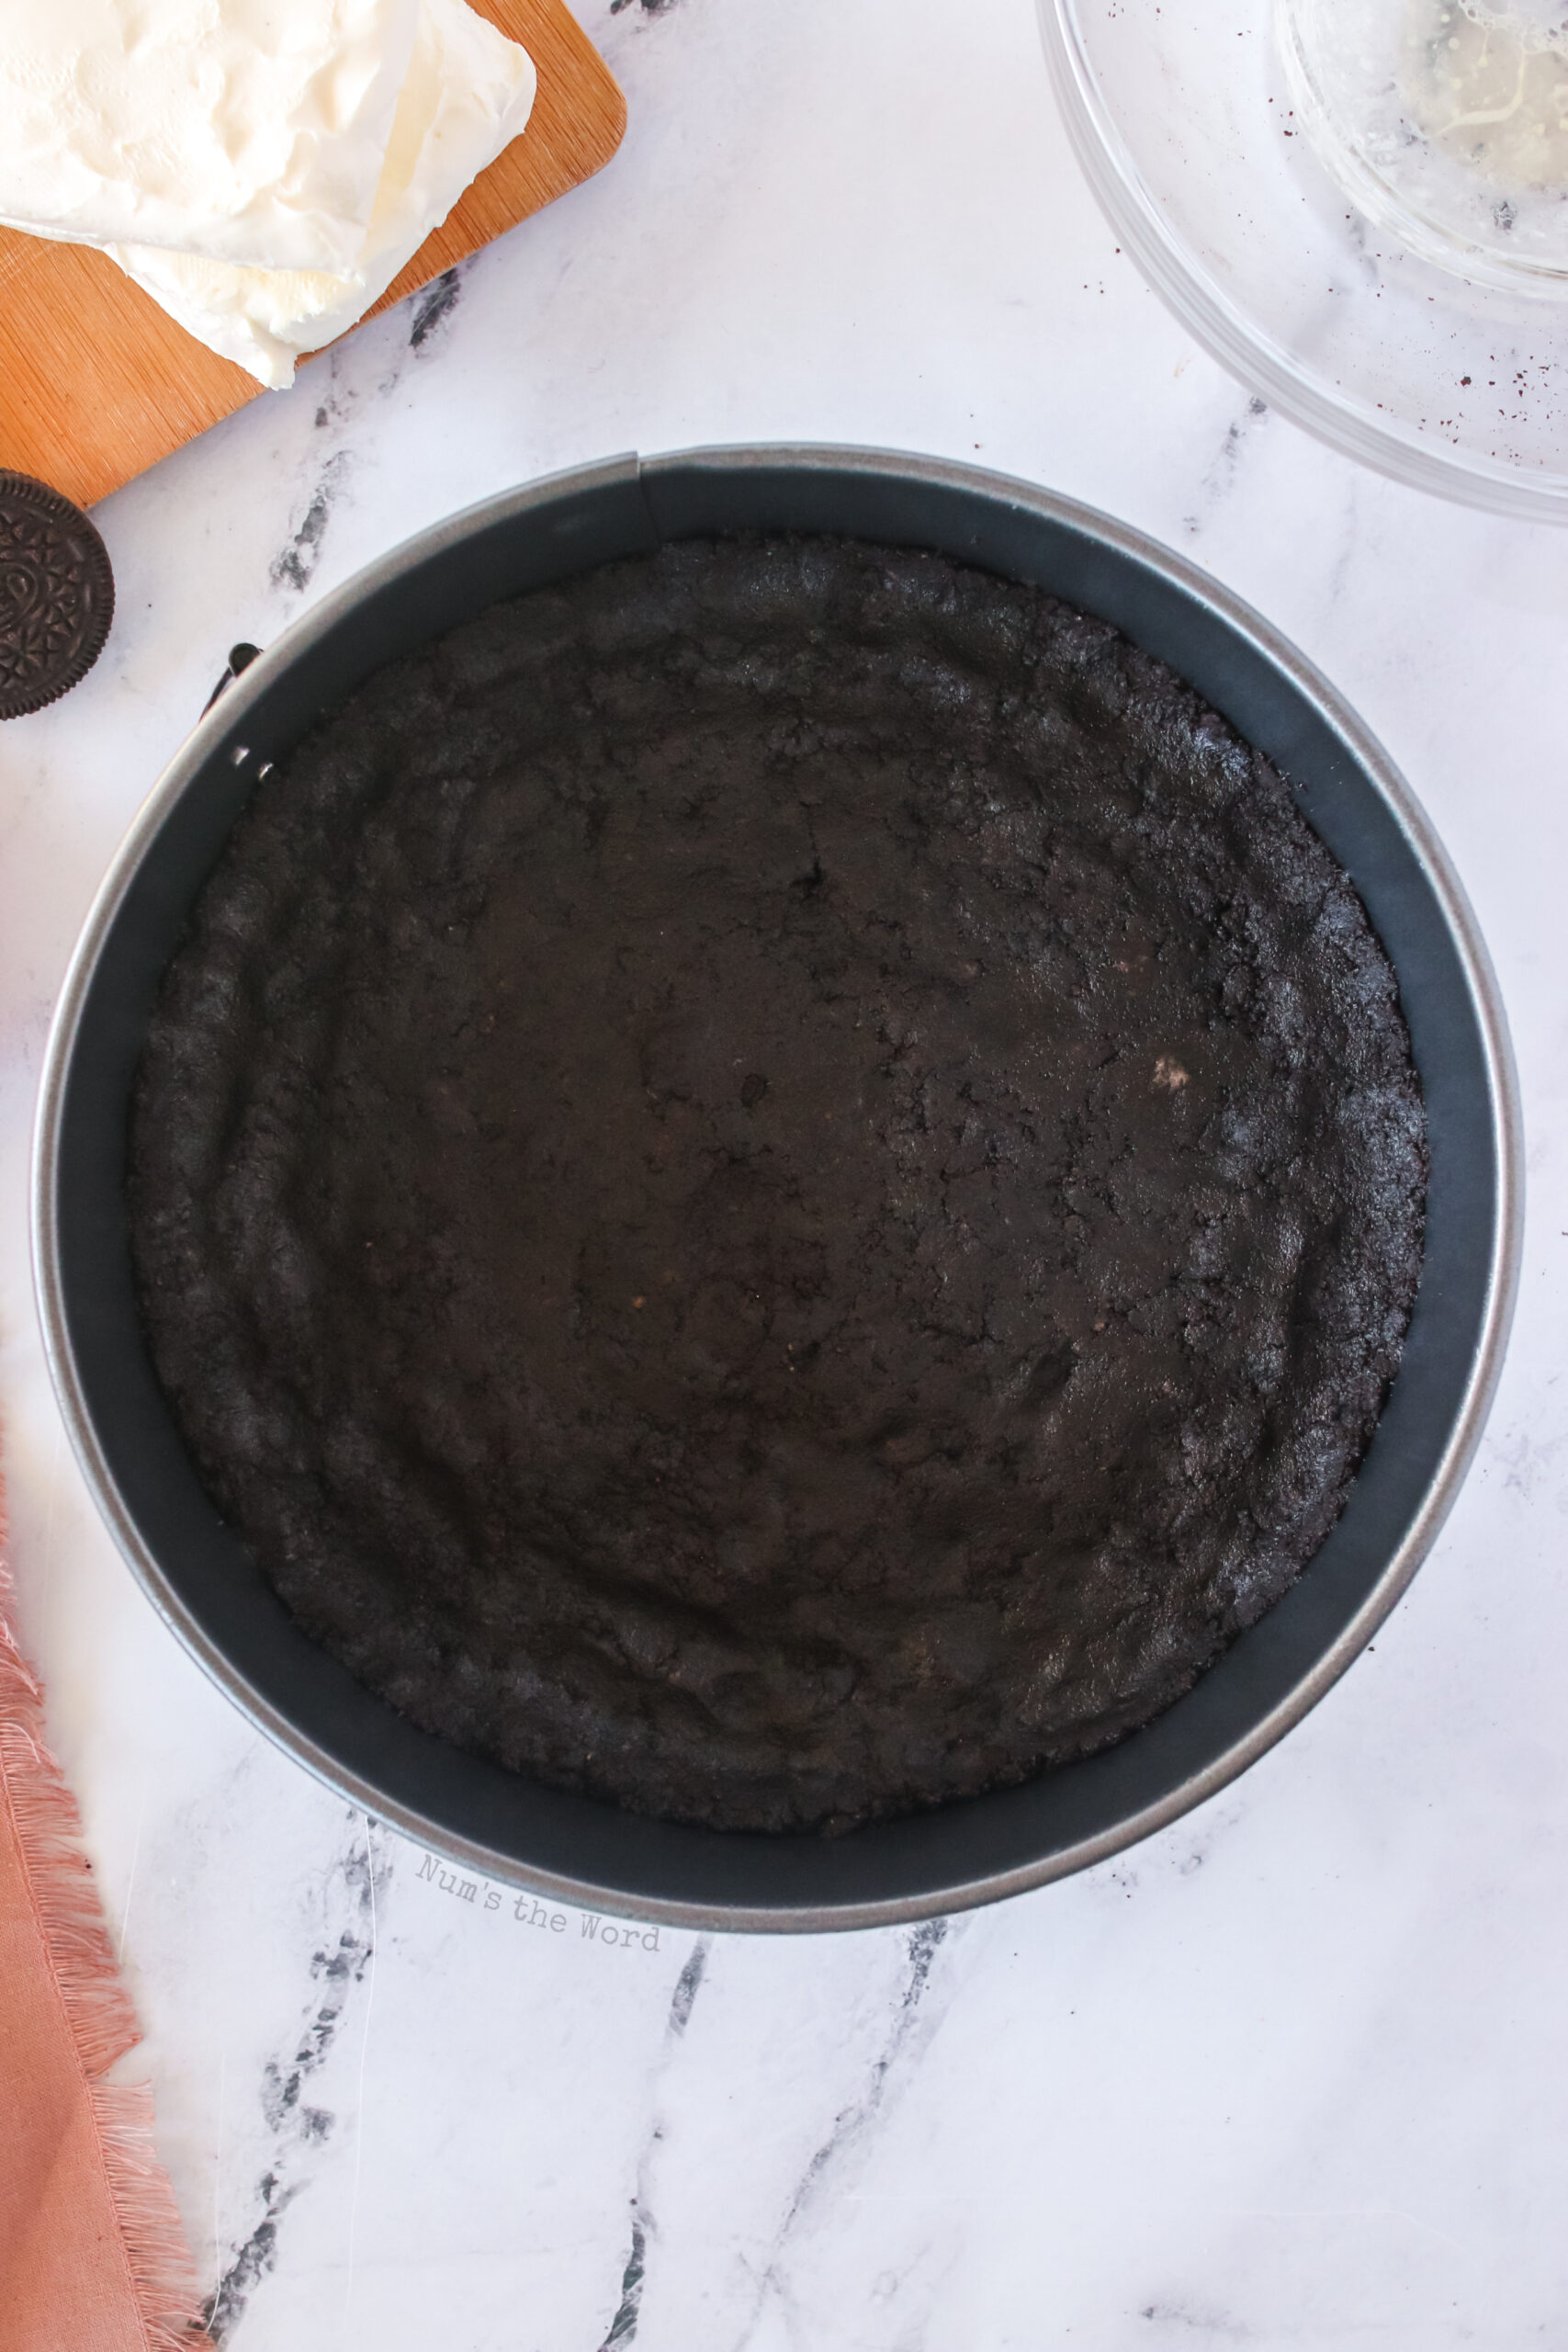 oreo crust added to cheesecake pan and pressed into place.